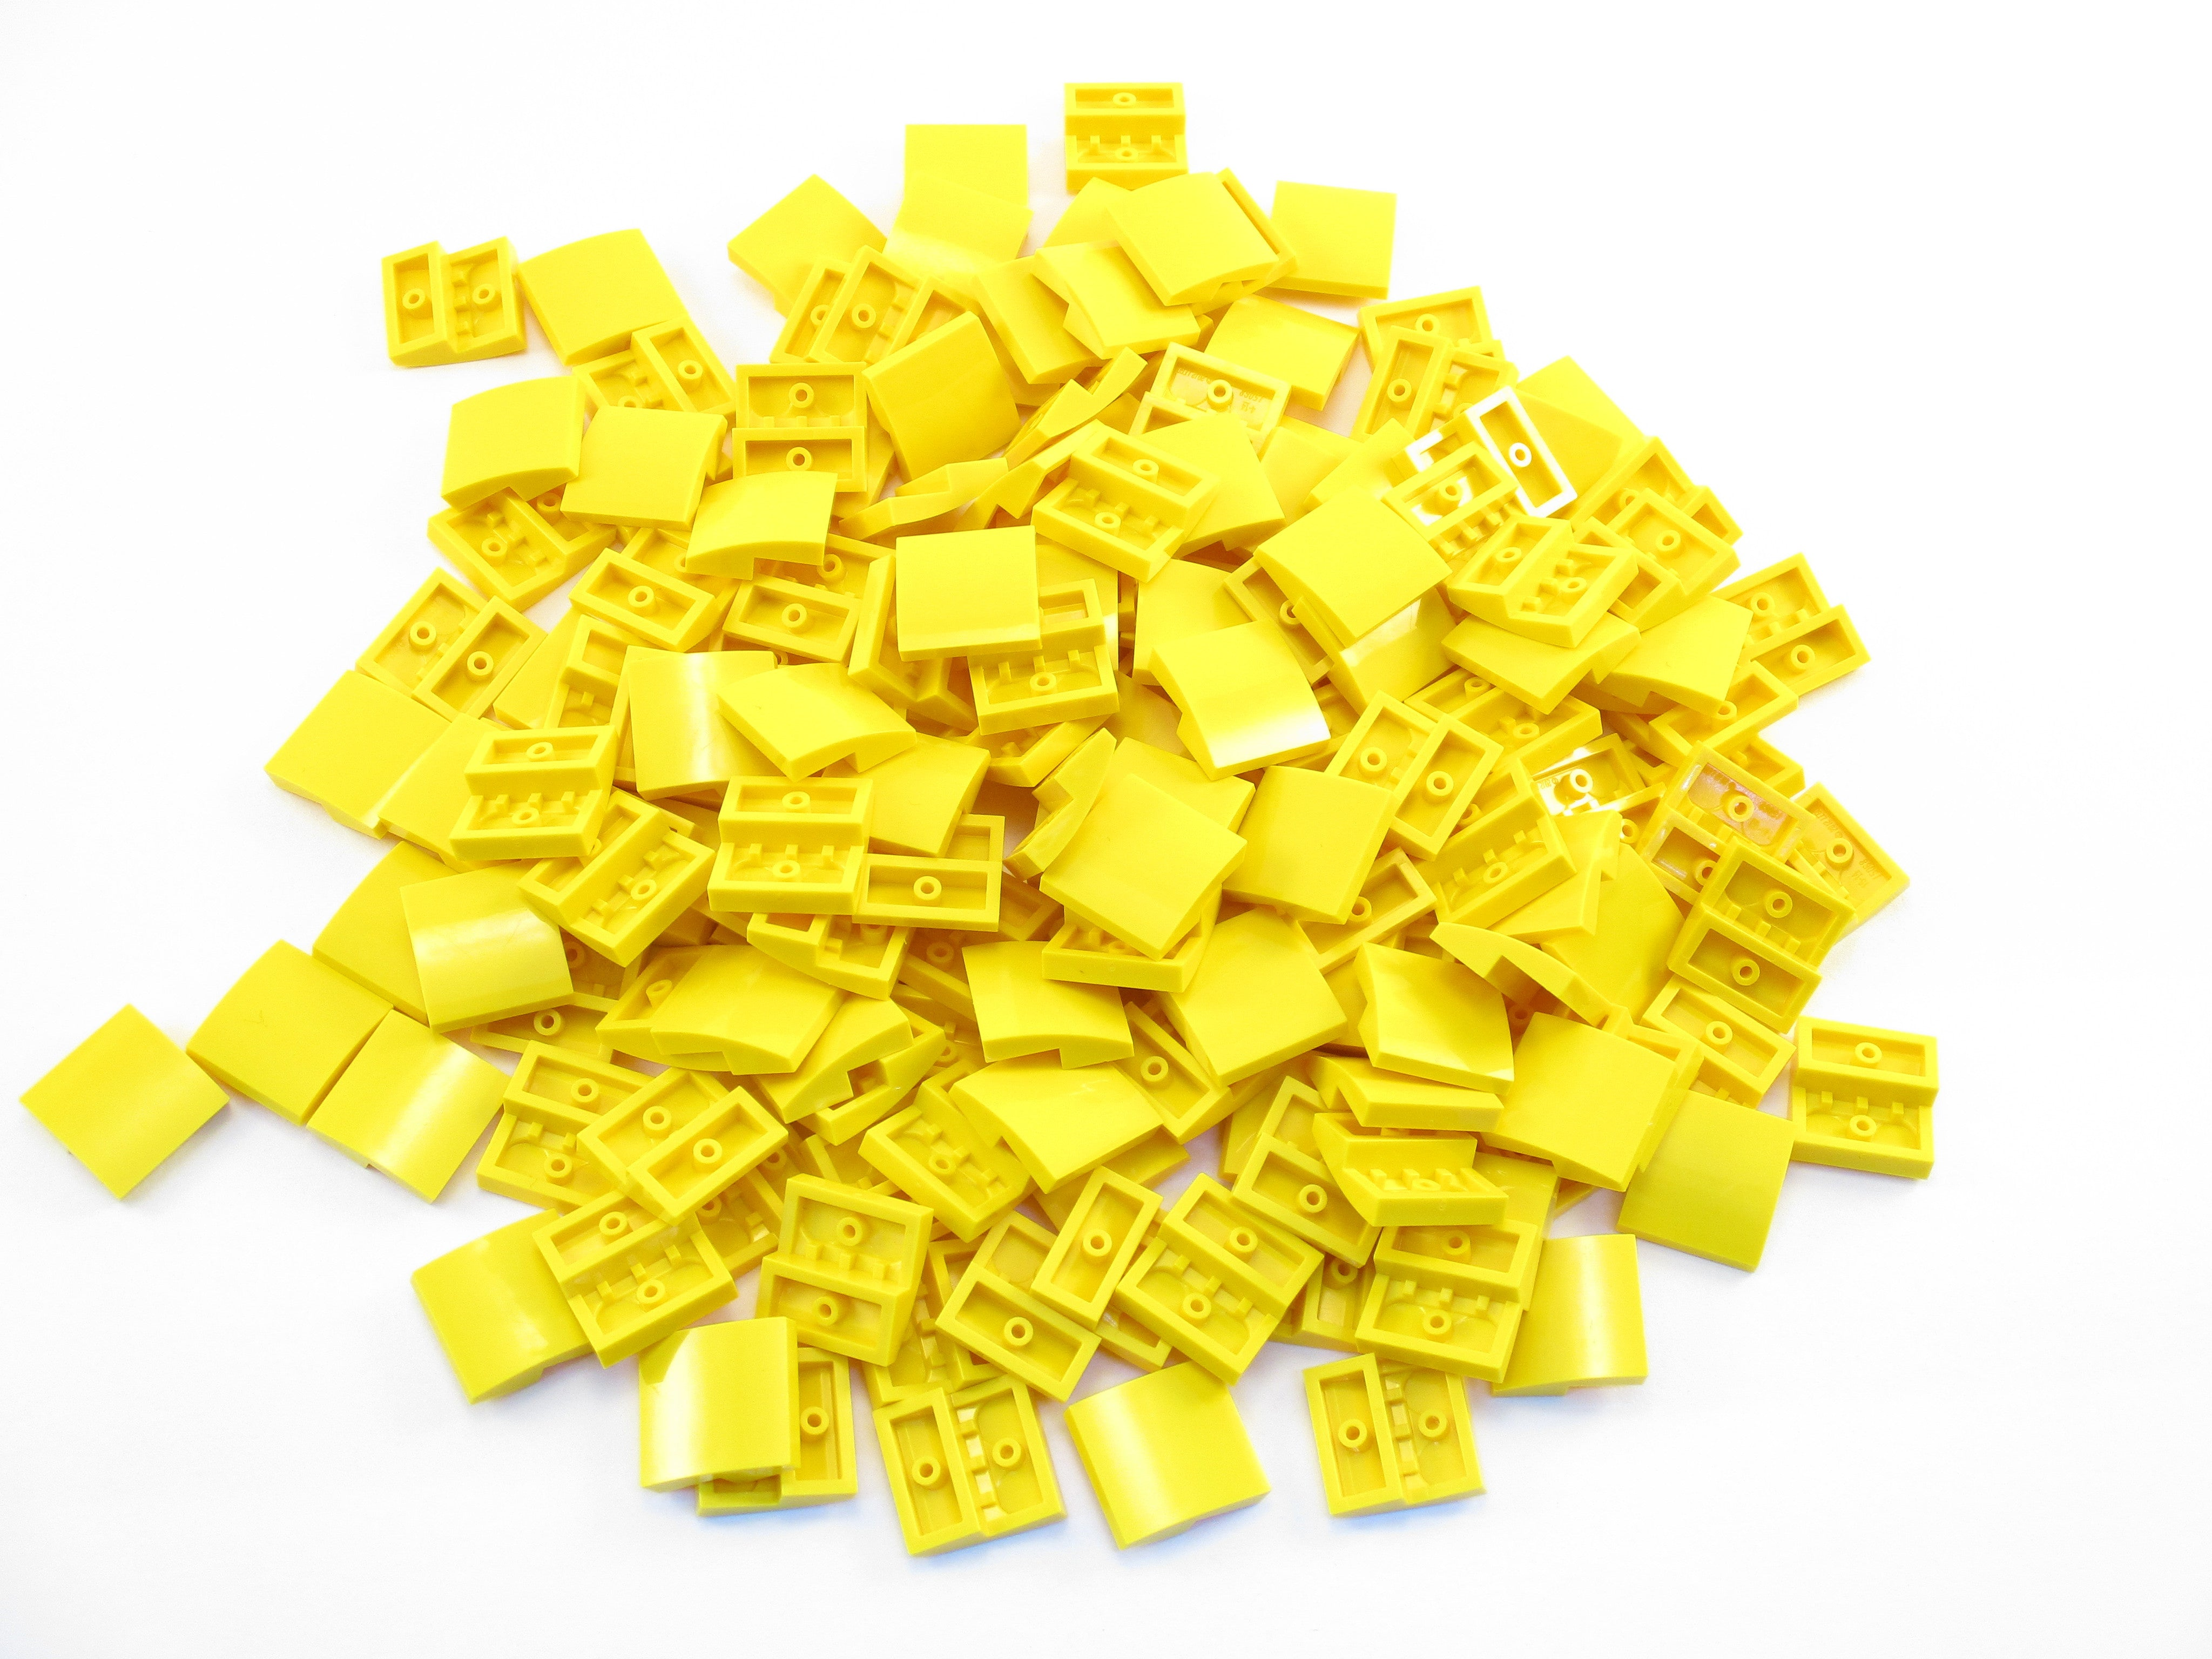 LEGO Yellow Slope Curved 2x2 No Studs Lot of 100 Parts Pieces 15068